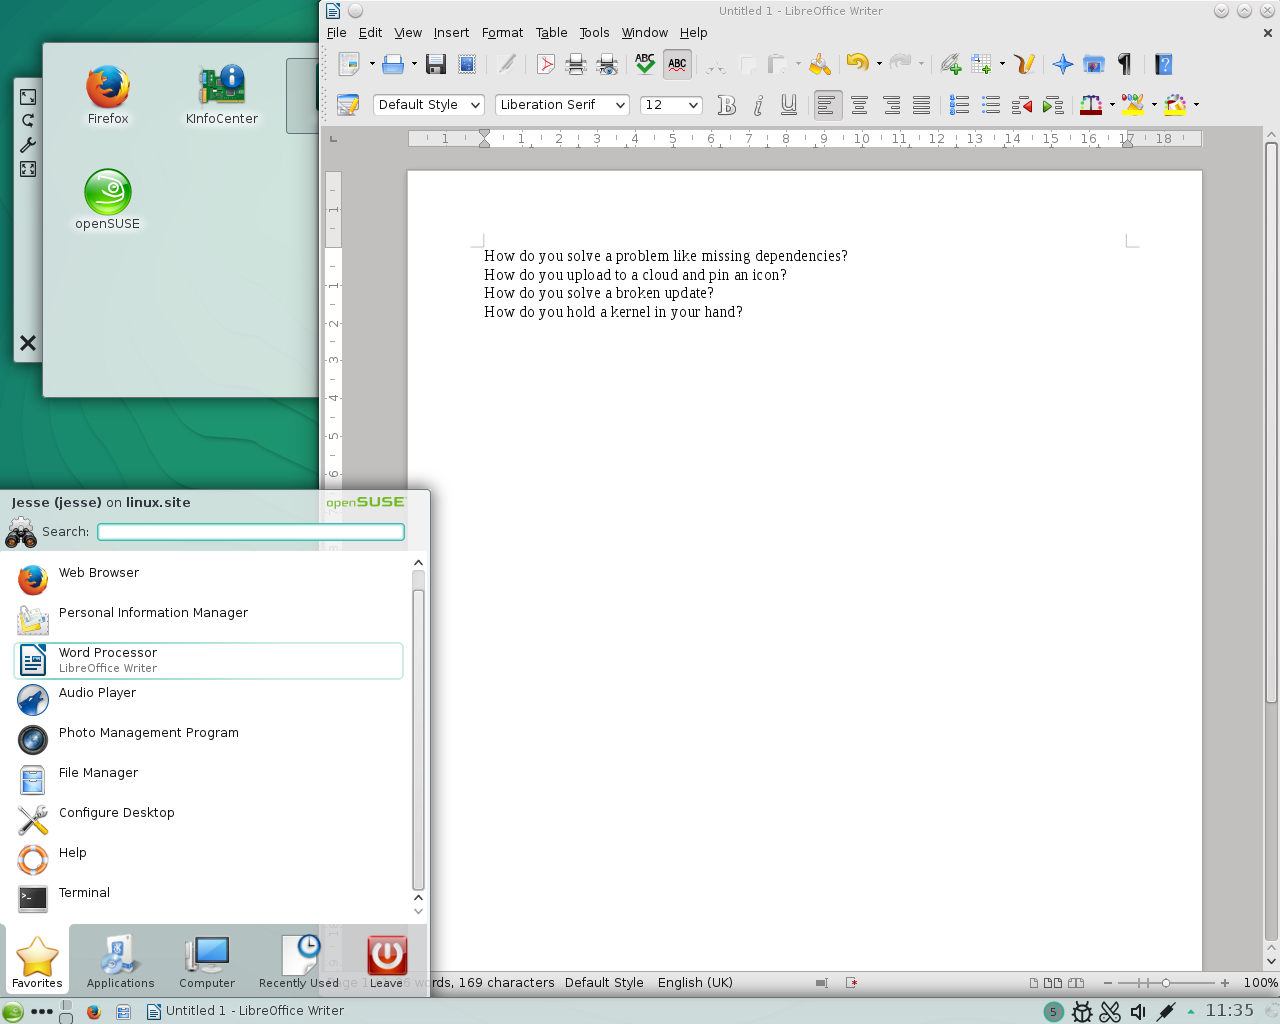 opensuse-13.2-apps.png